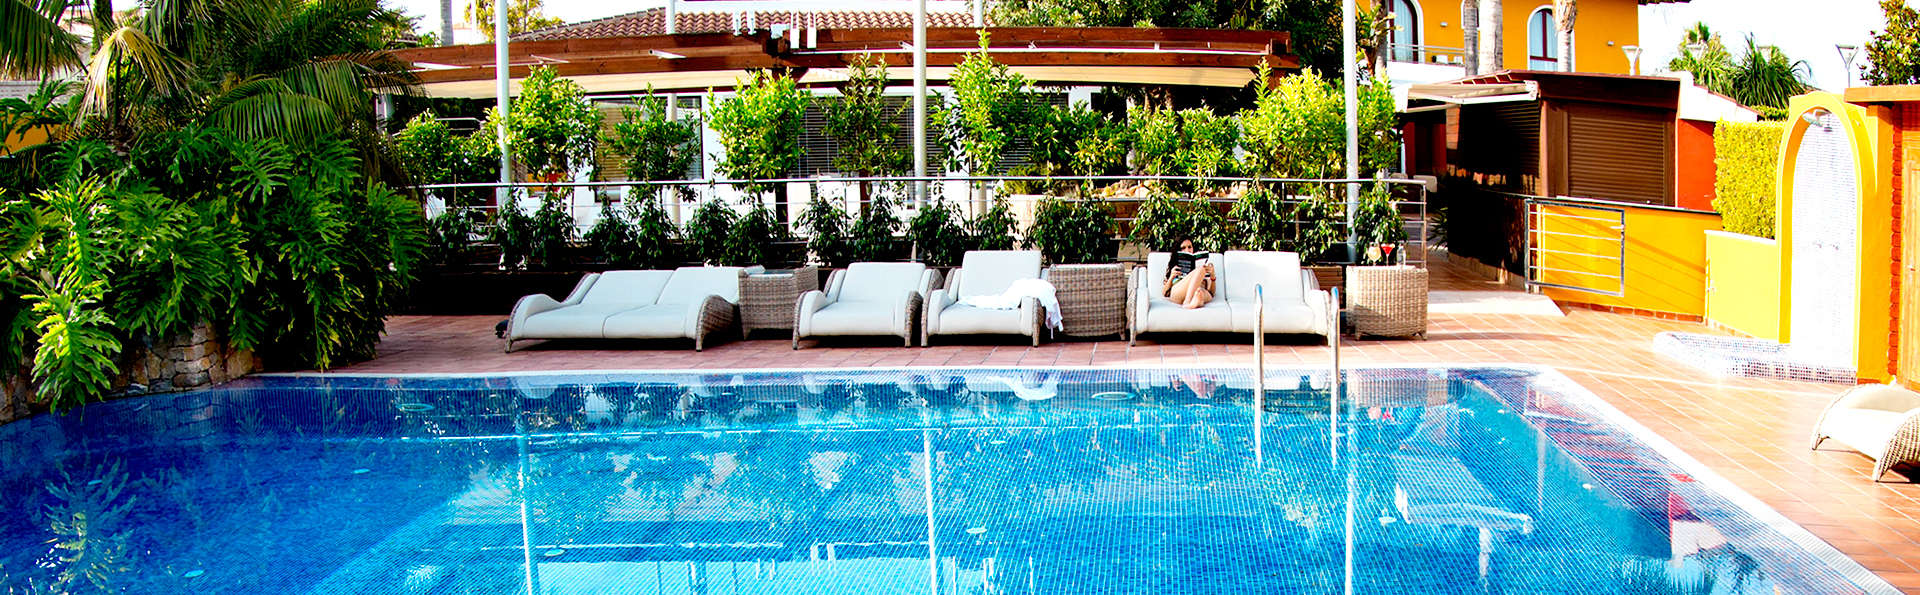 The Cook Book Gastro Boutique Hotel & Spa - Edit_Pool5.jpg